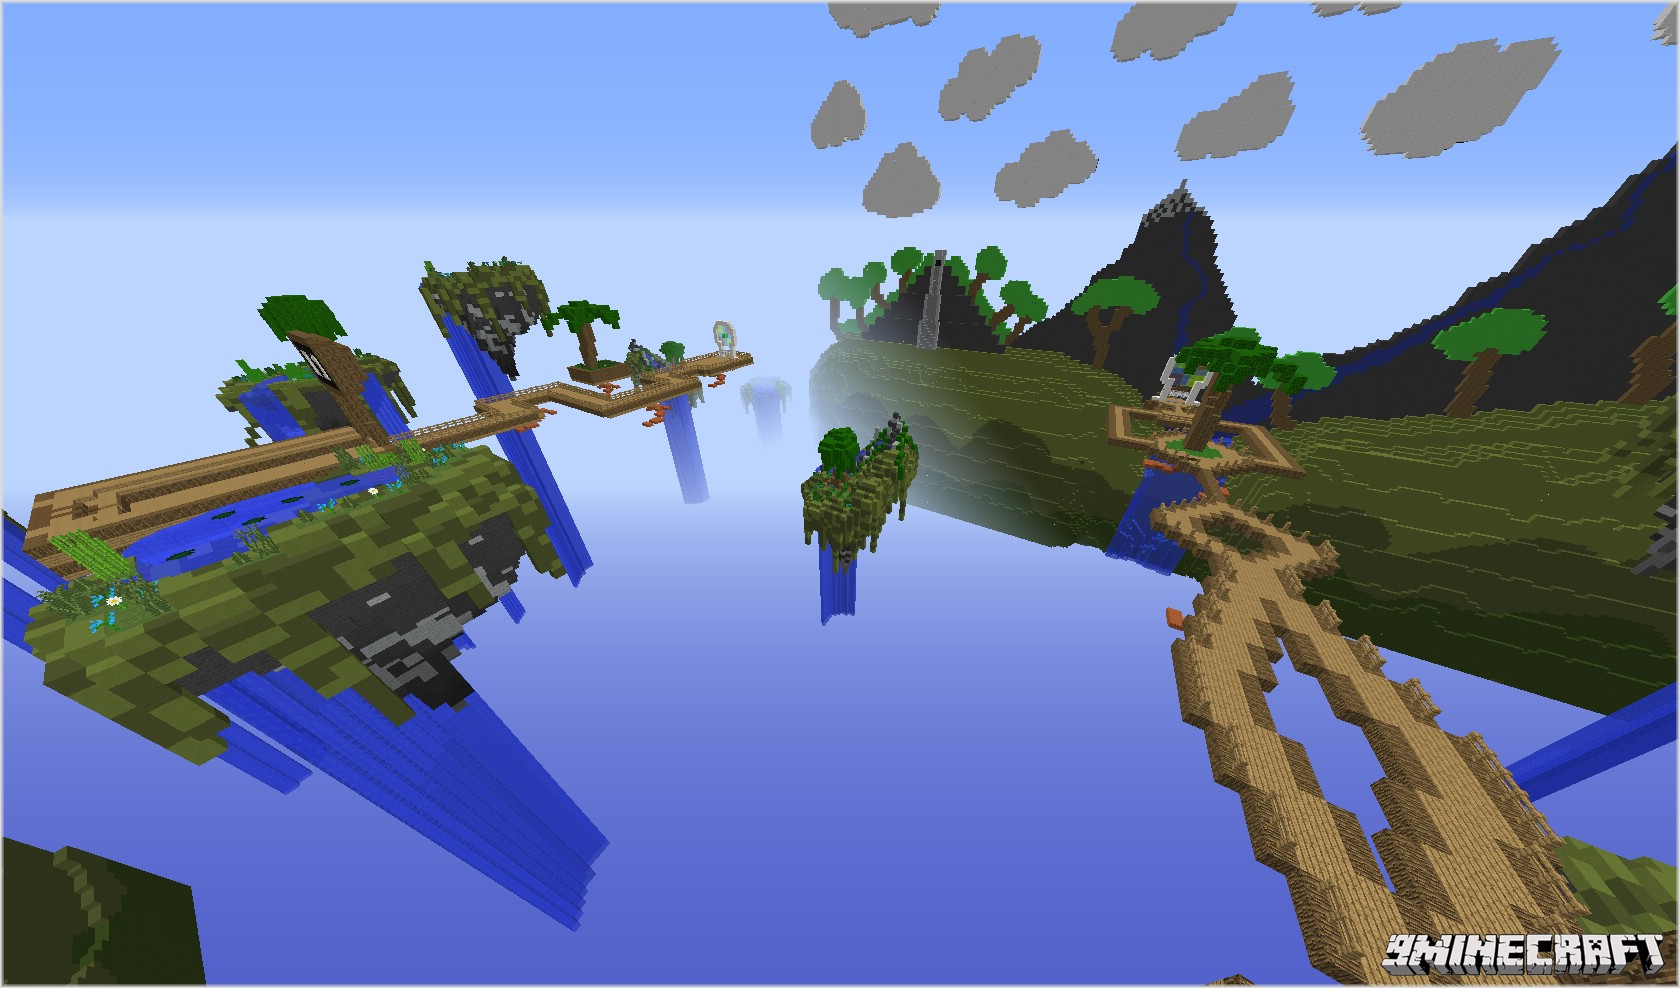 Super Steve Runner Map Screenshots 1 [1.7.4] Super Steve Runner Map Download 4